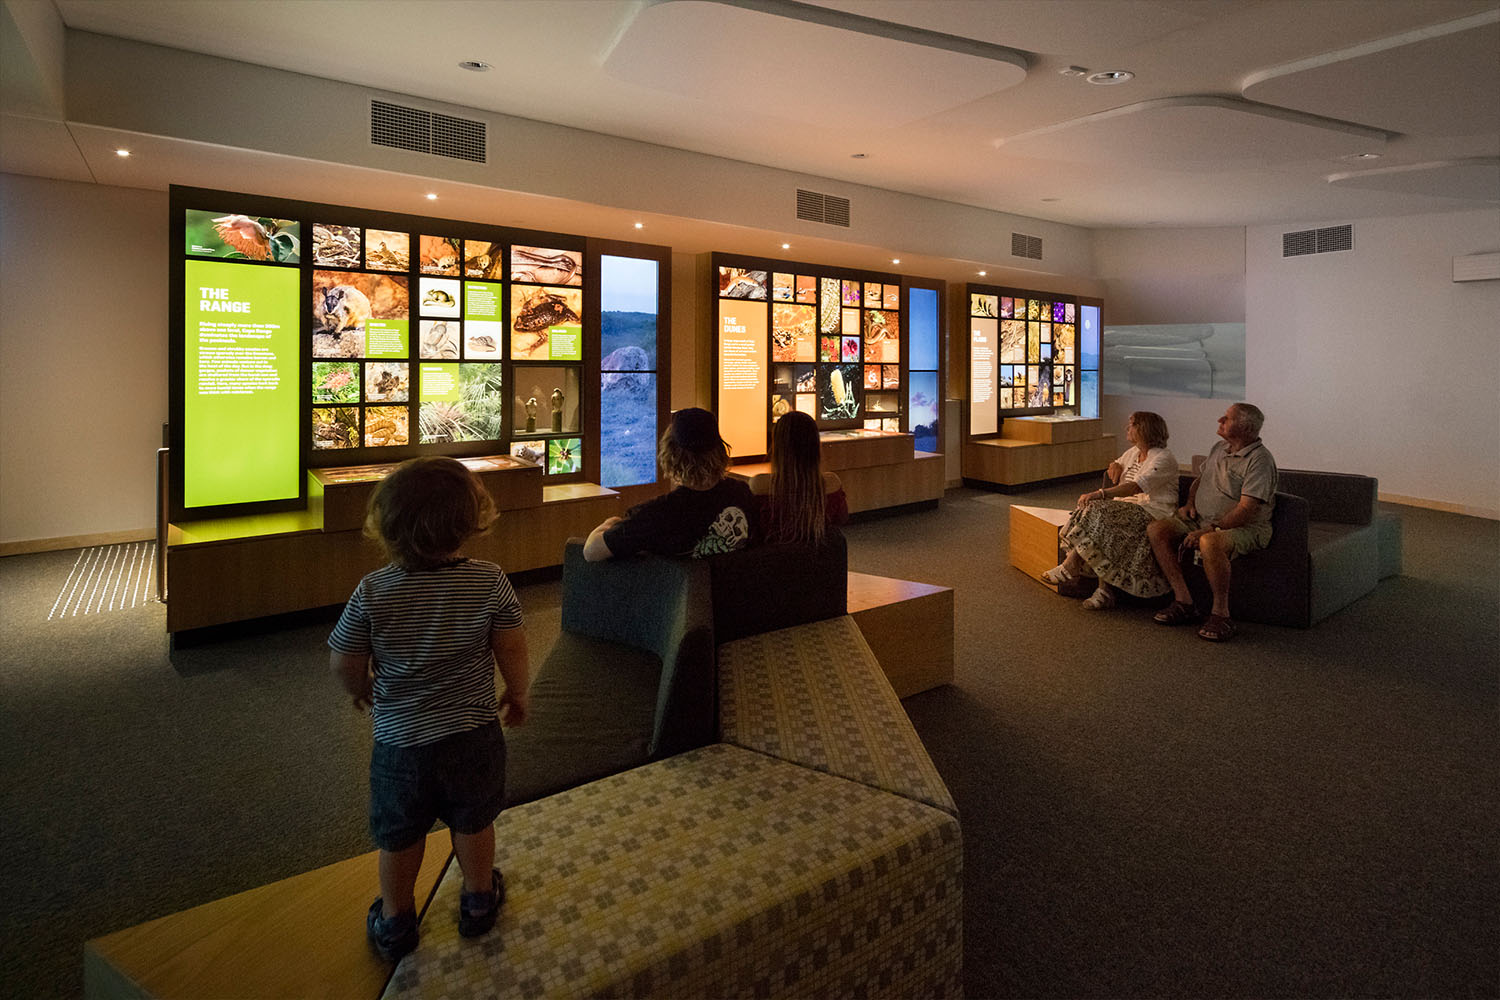 Ningaloo Centre. All components are integrated according to a defined thematic structure of related content. This generates an experience which is educational and playful, catering to a wide range of audiences.